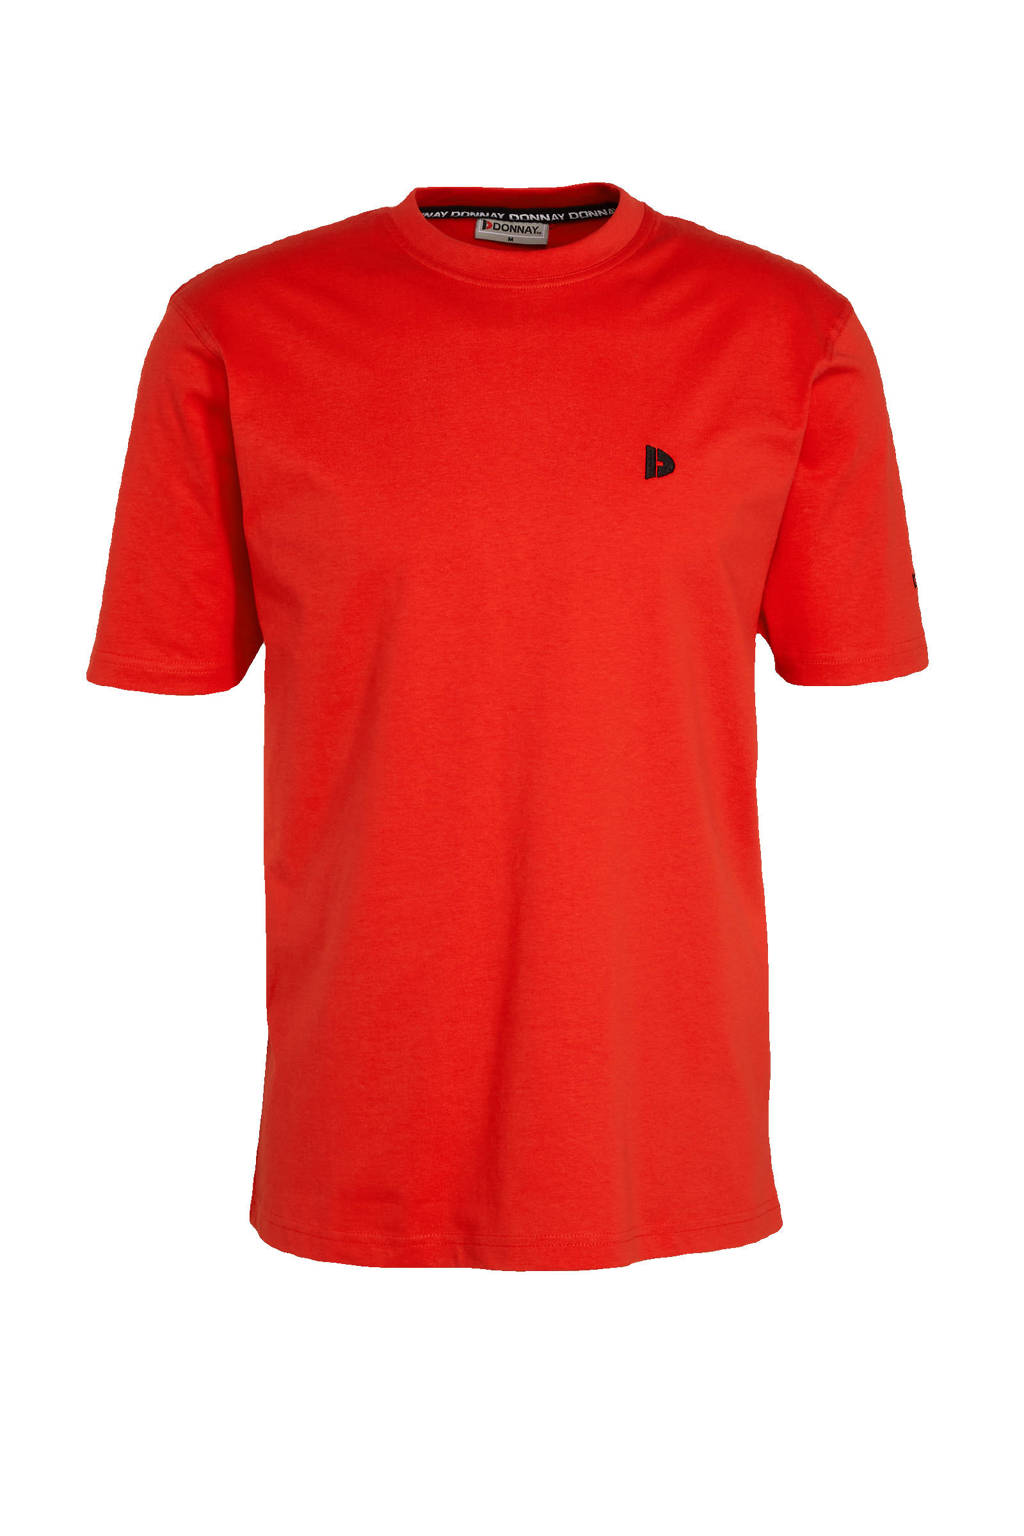 Donnay   sport T-shirt rood, Rood